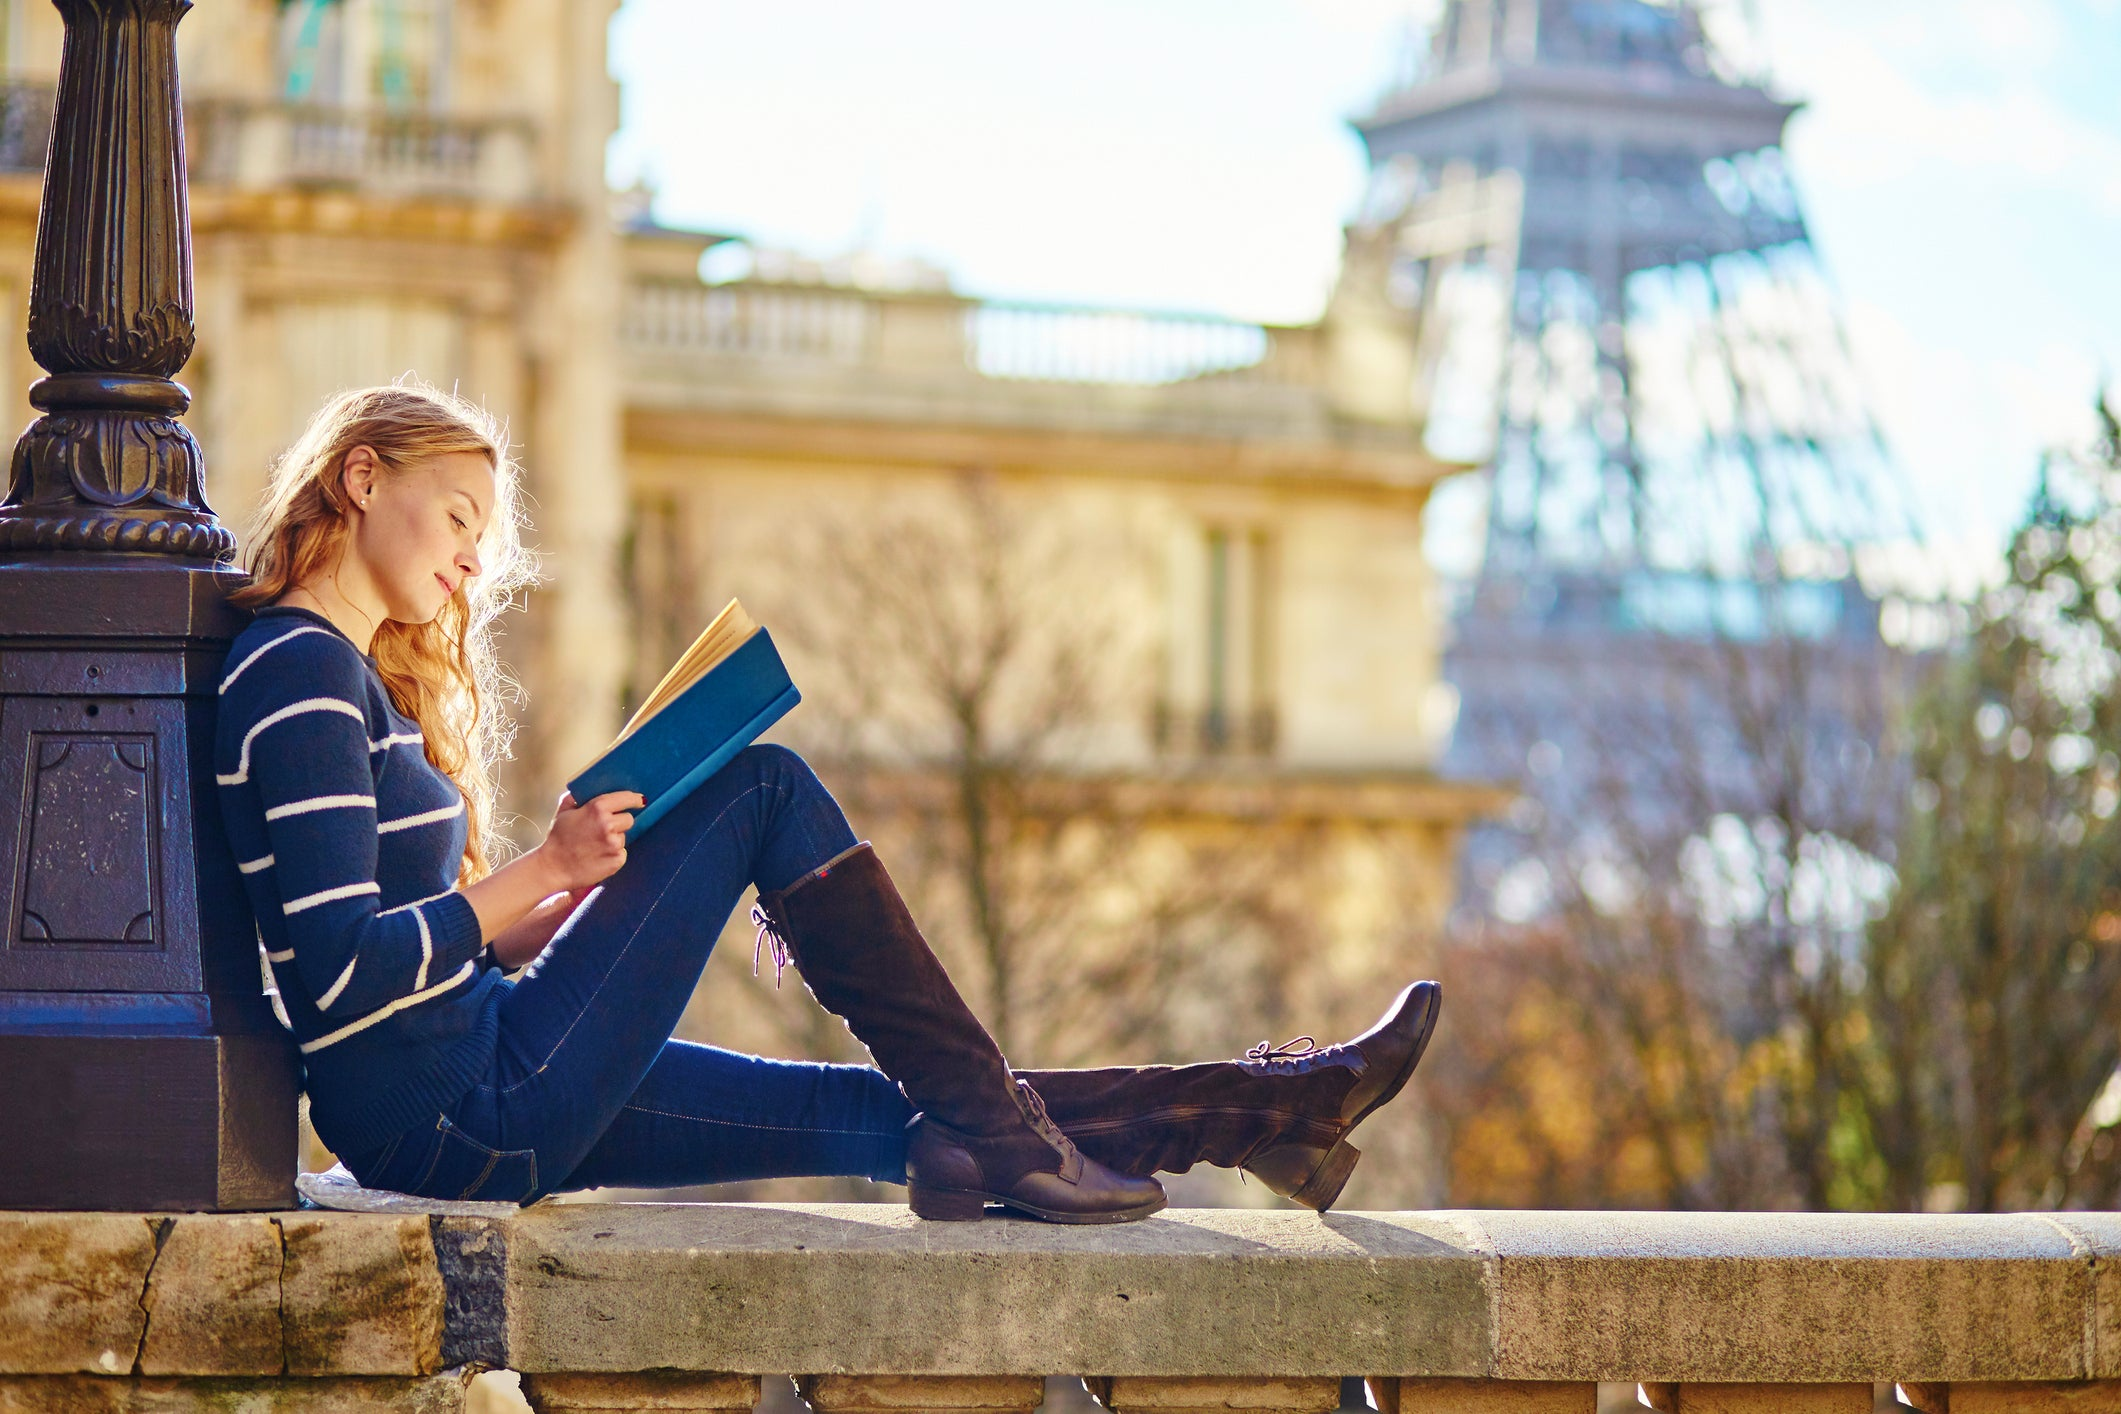 A young woman reading a book with the Eiffel Tower in the background.